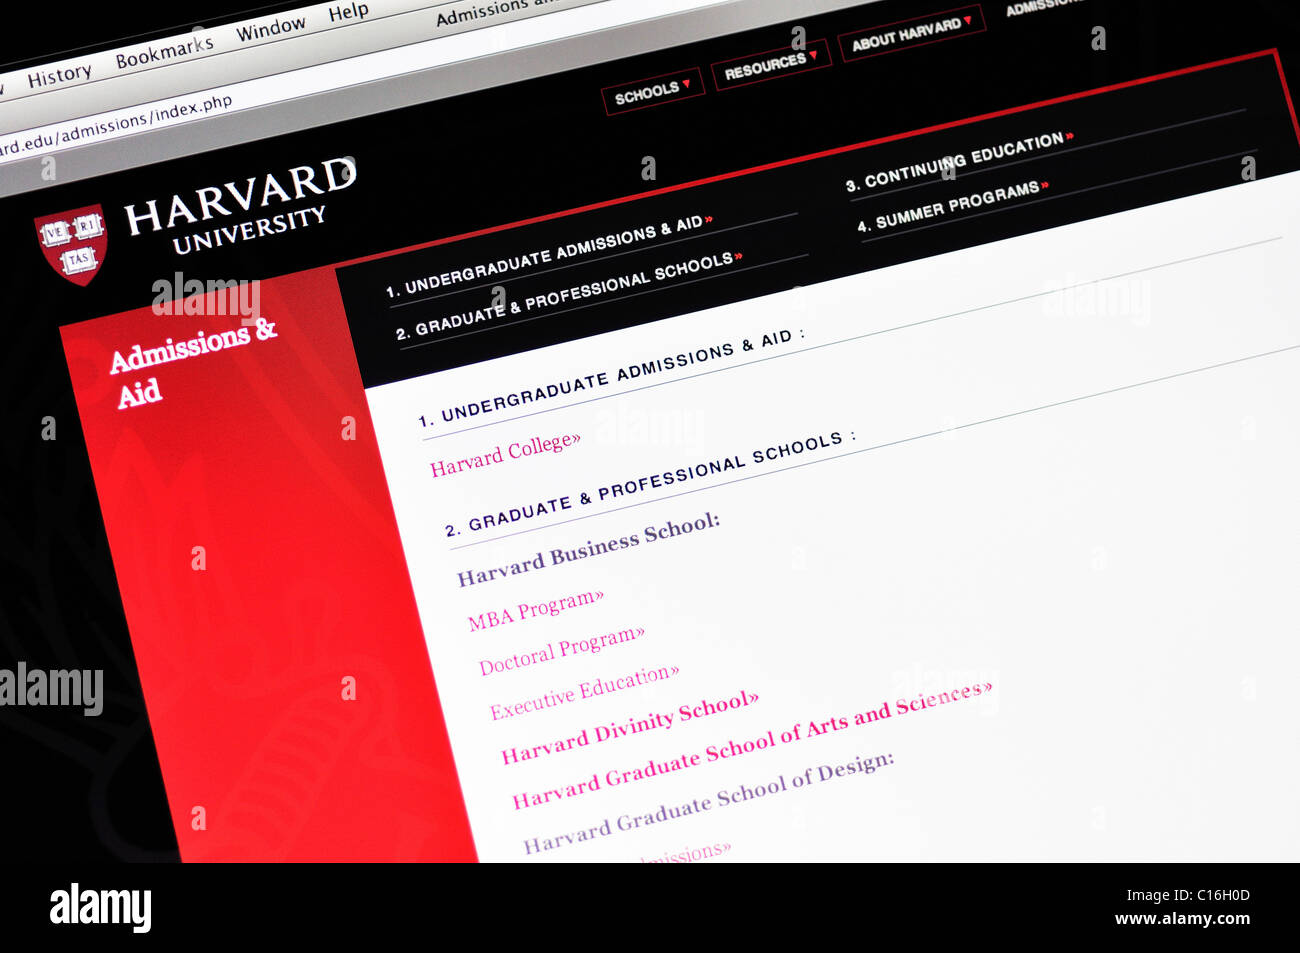 Harvard University website - Stock Image